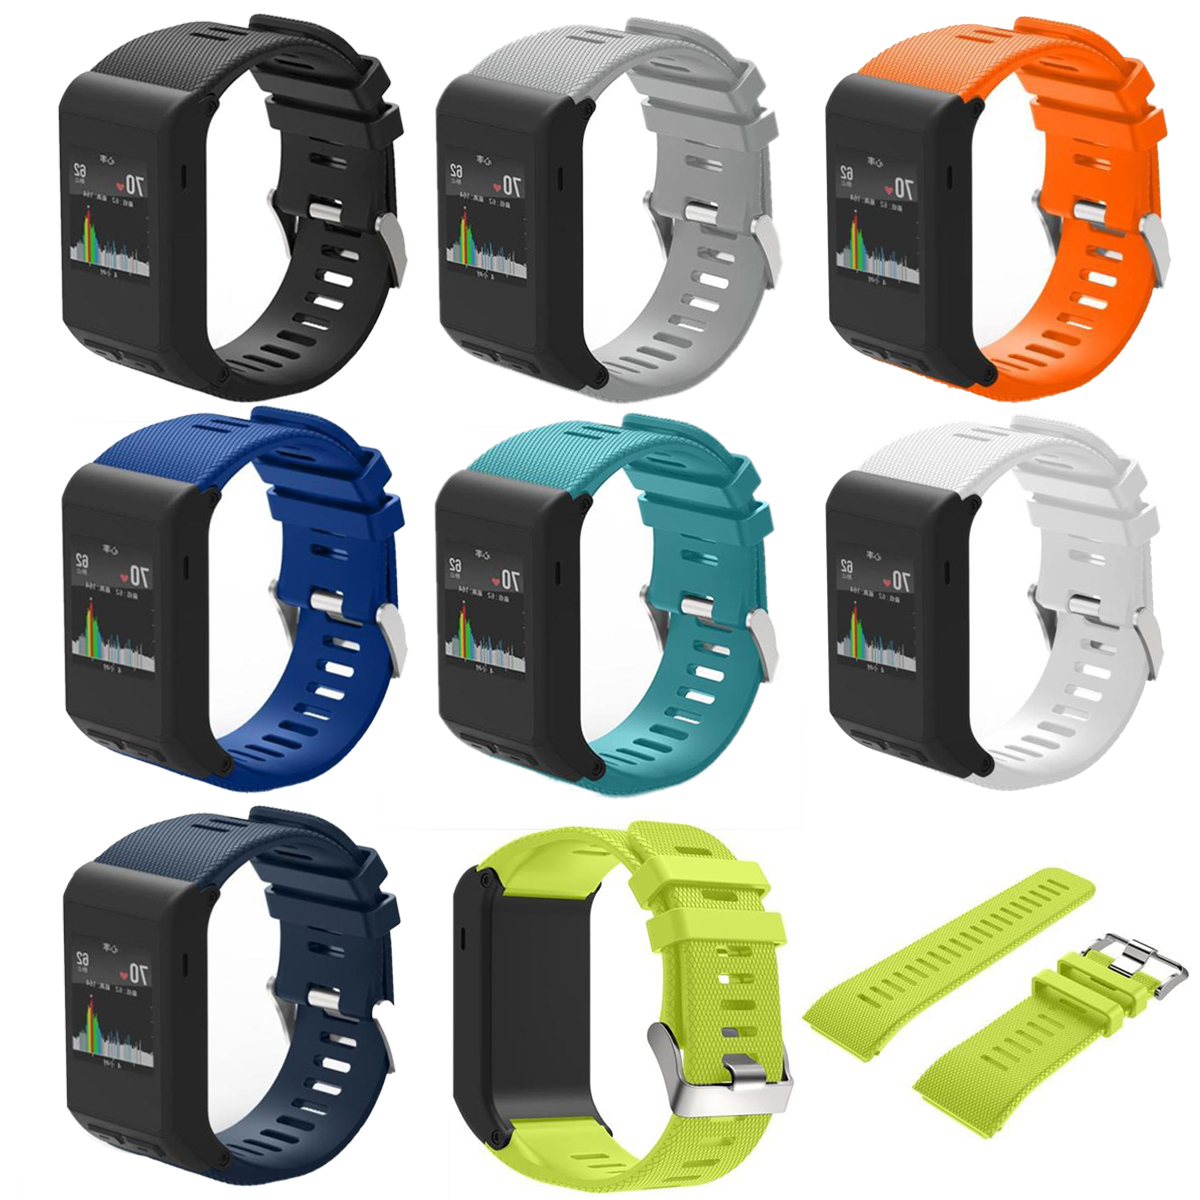 High Quality Sports Safety Silicone Replaceable Wrist Band Straps for Garmin Vivoactive HR Wristband Bracelet Belt